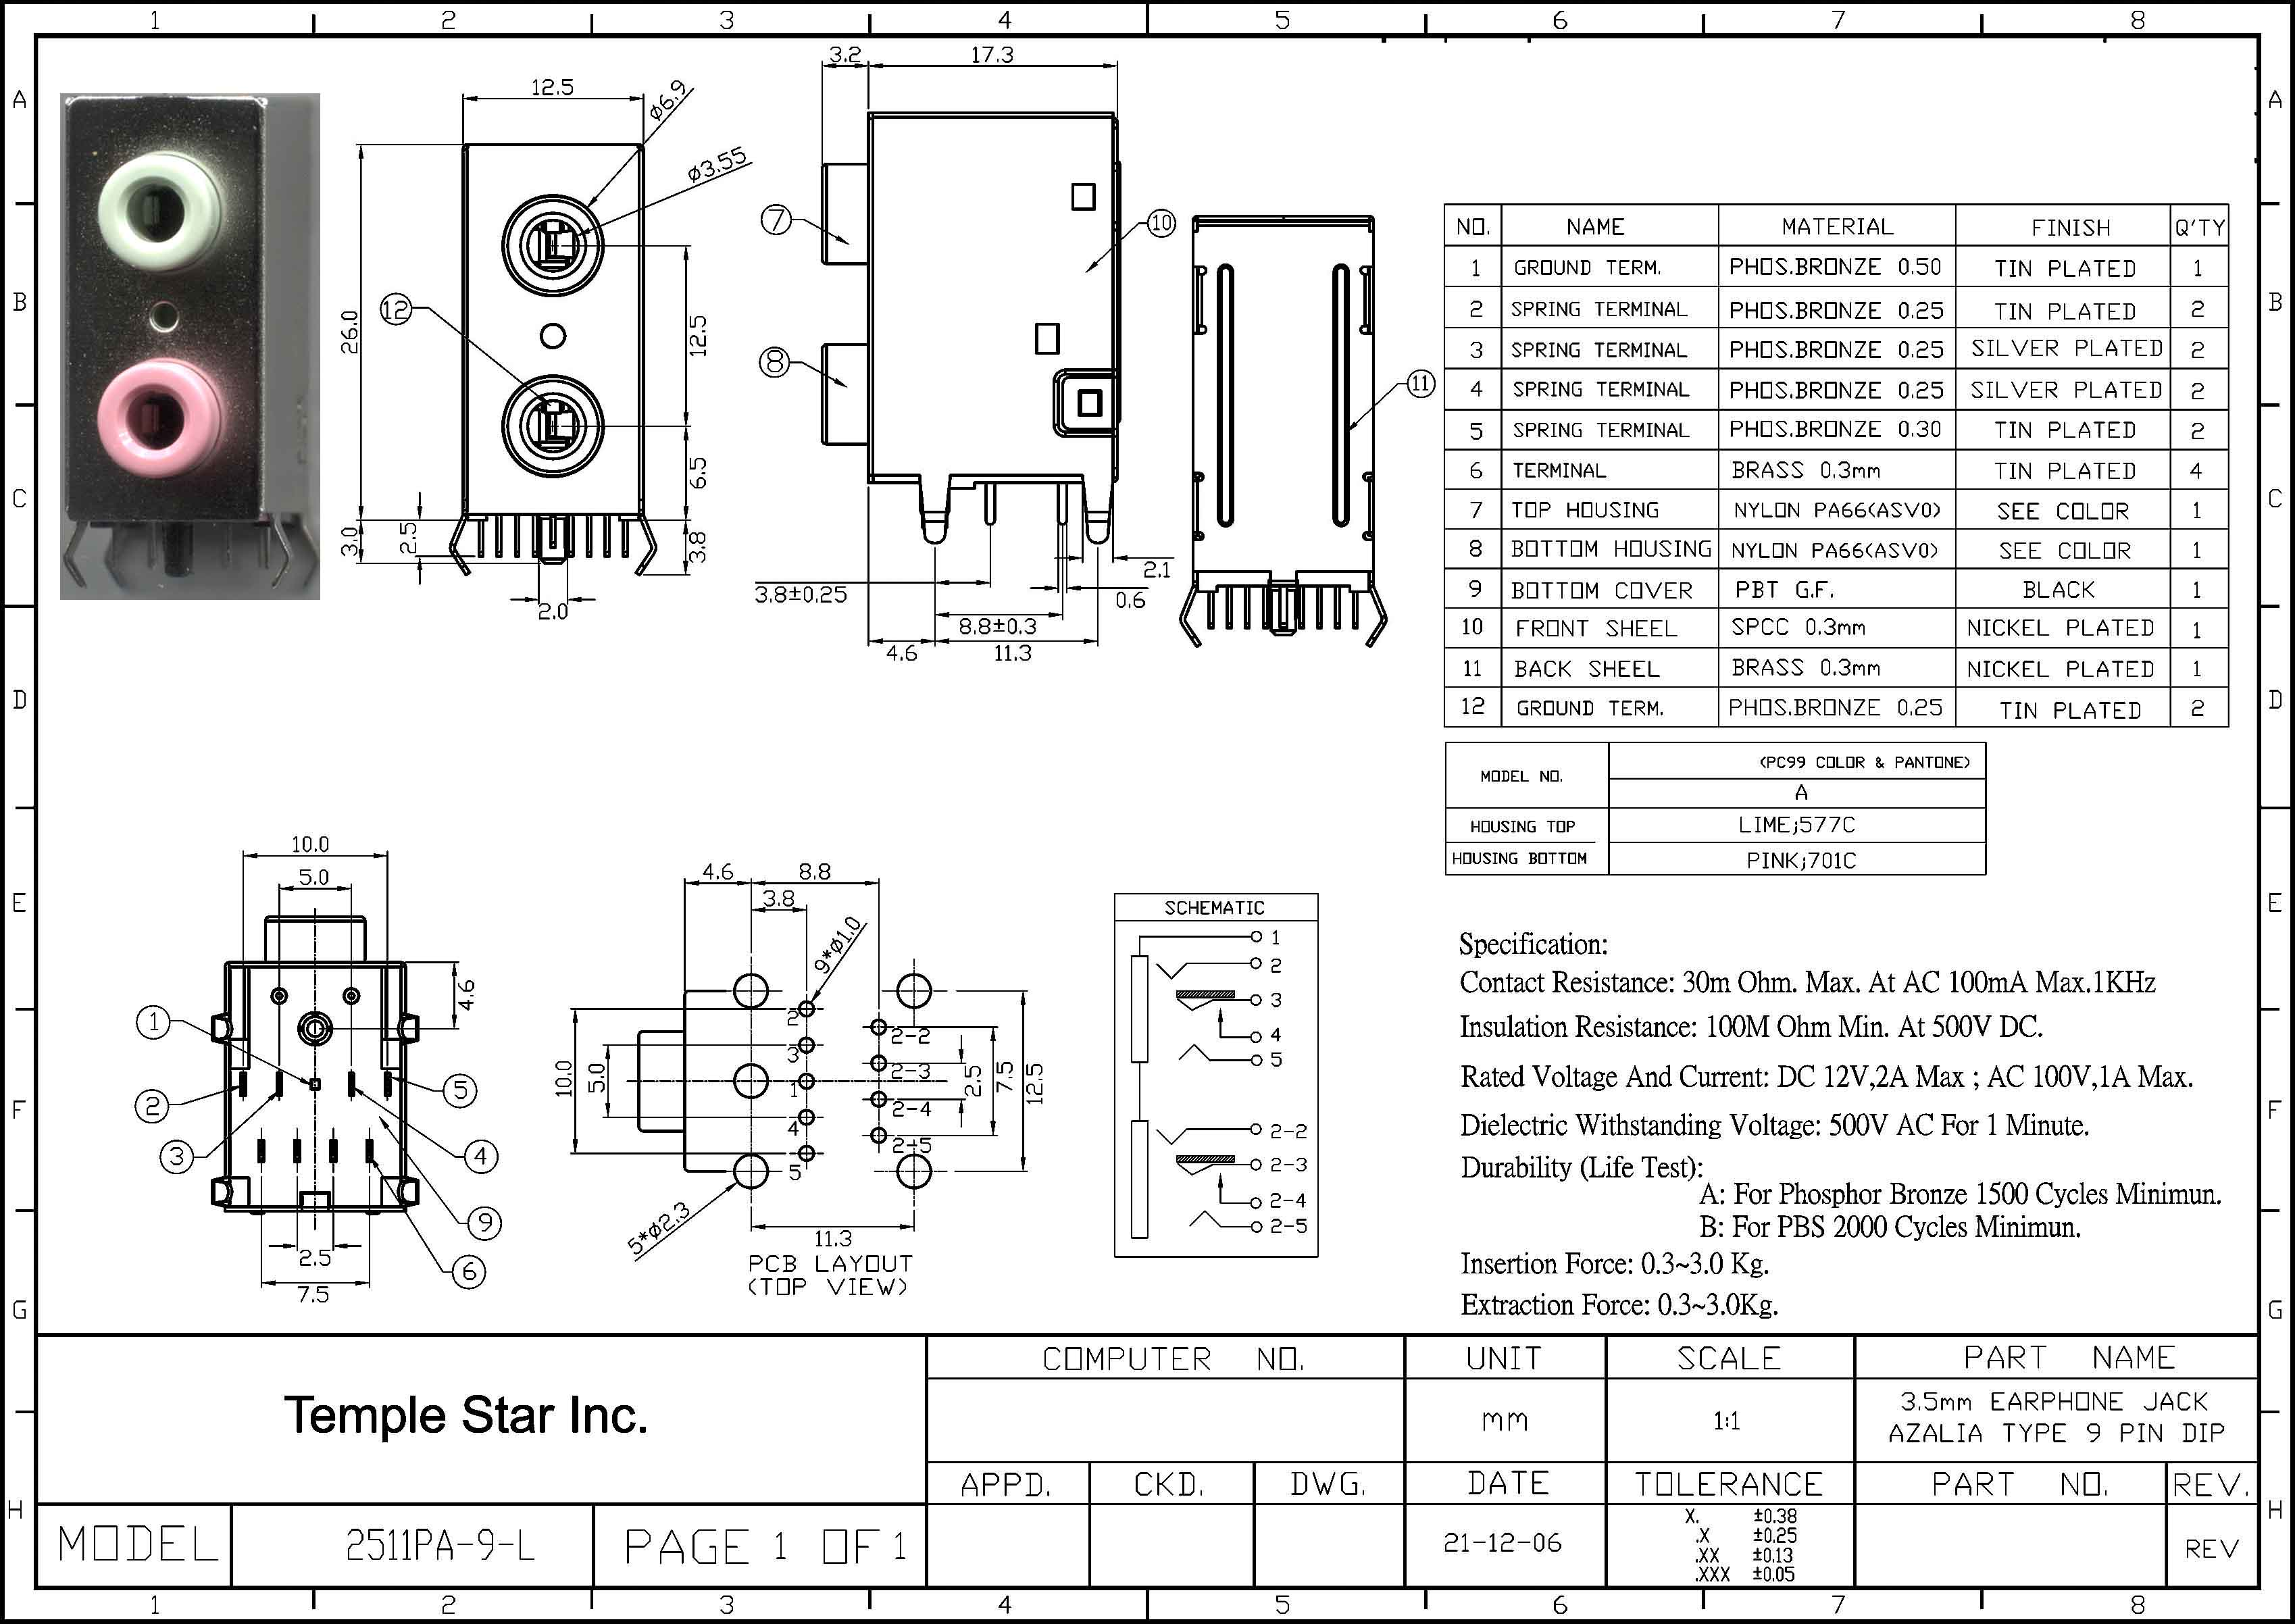 Temple Star Inc., Original Manufacturers Direct Price